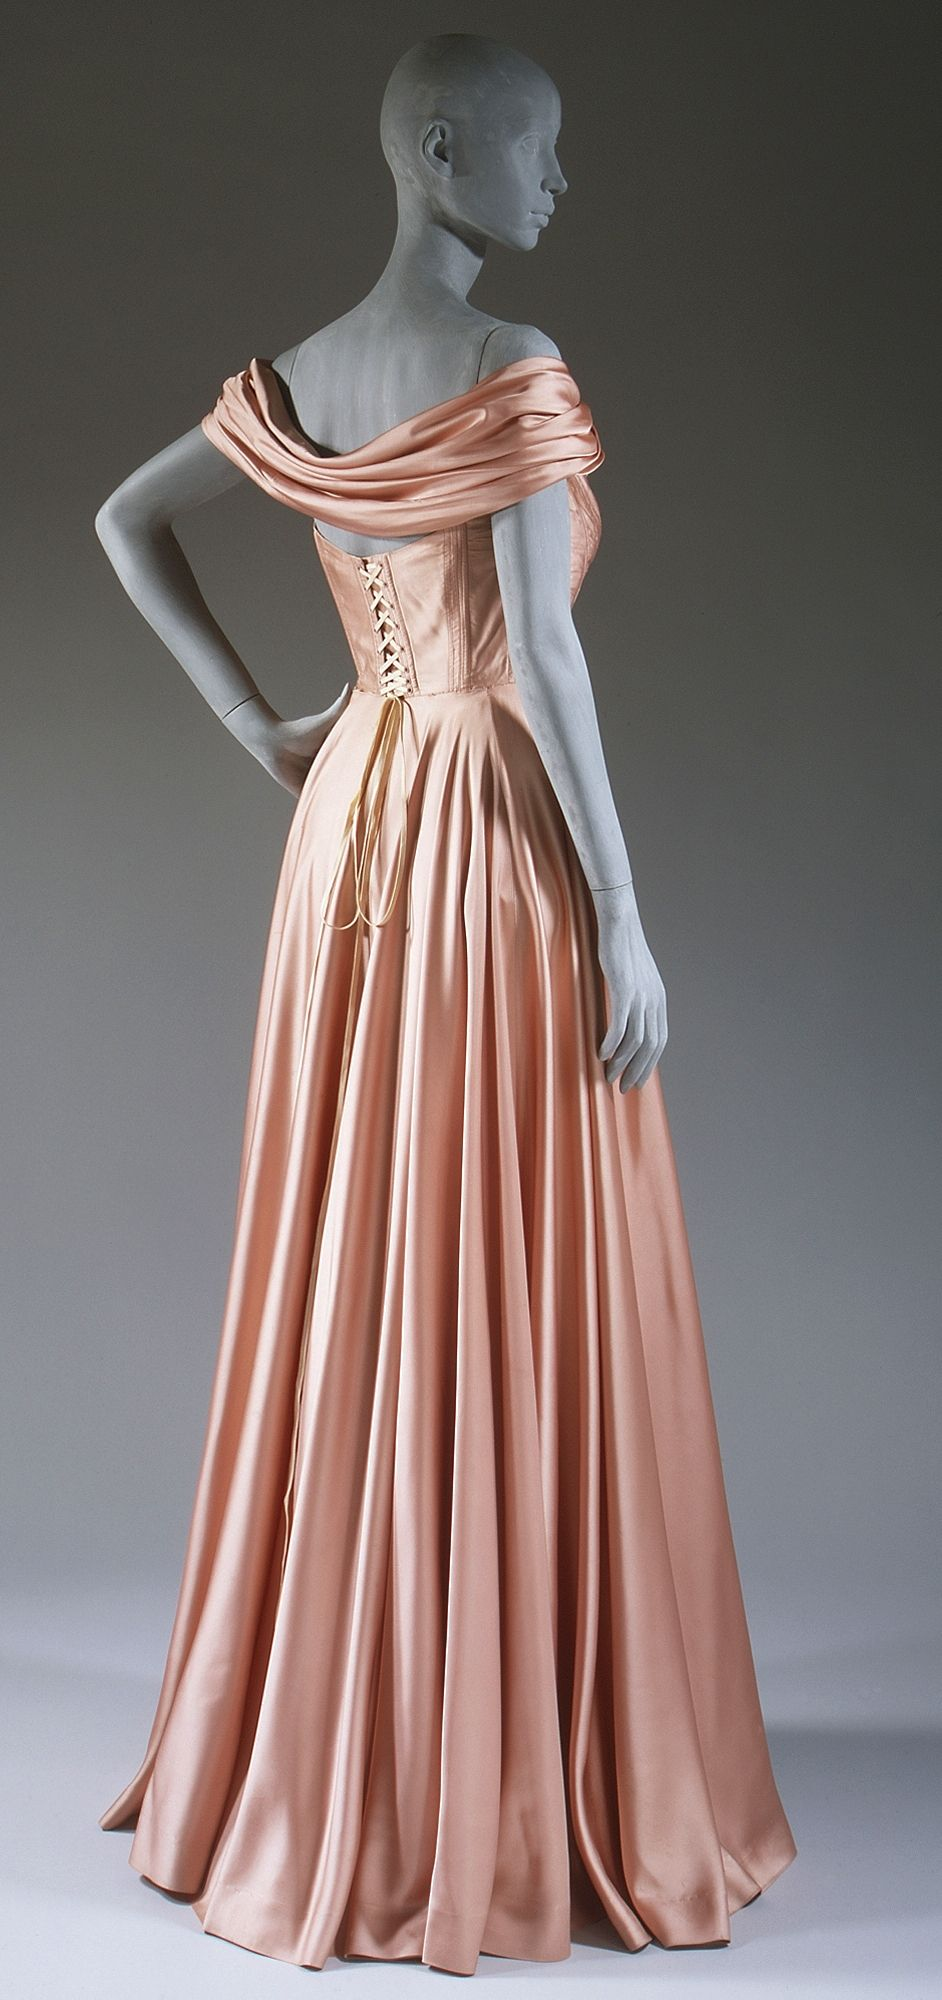 Jacques Fath 1947 Period Costumes Pinterest Kleider Mode And